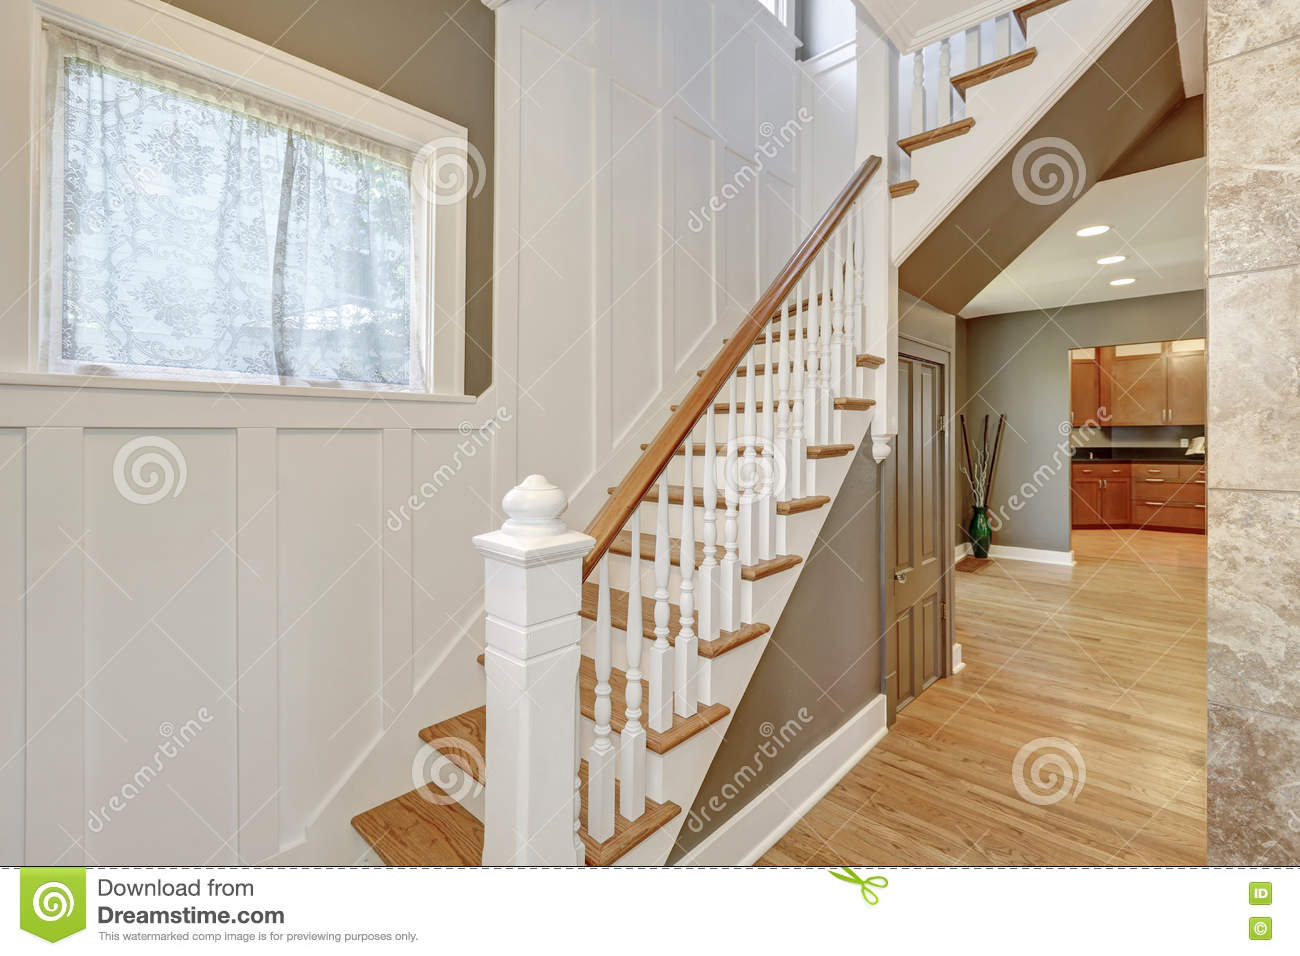 Paneled Staircase Staircase With White And Brown Railings And Wood Paneled